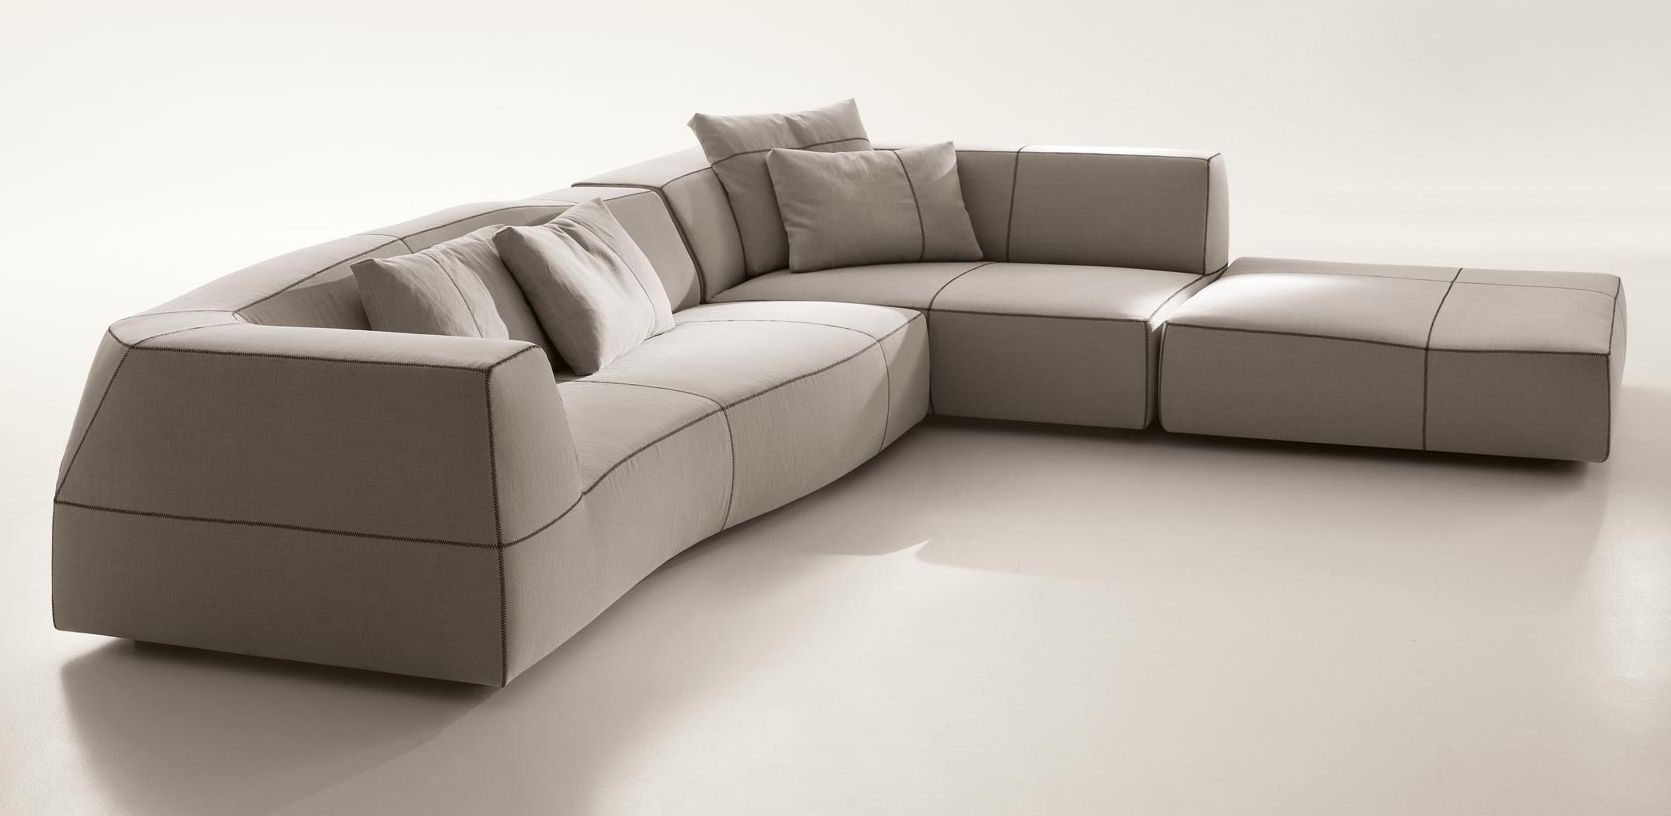 Designer couch  The Latest Sofa Designs Simple Decoration | decor | Pinterest ...